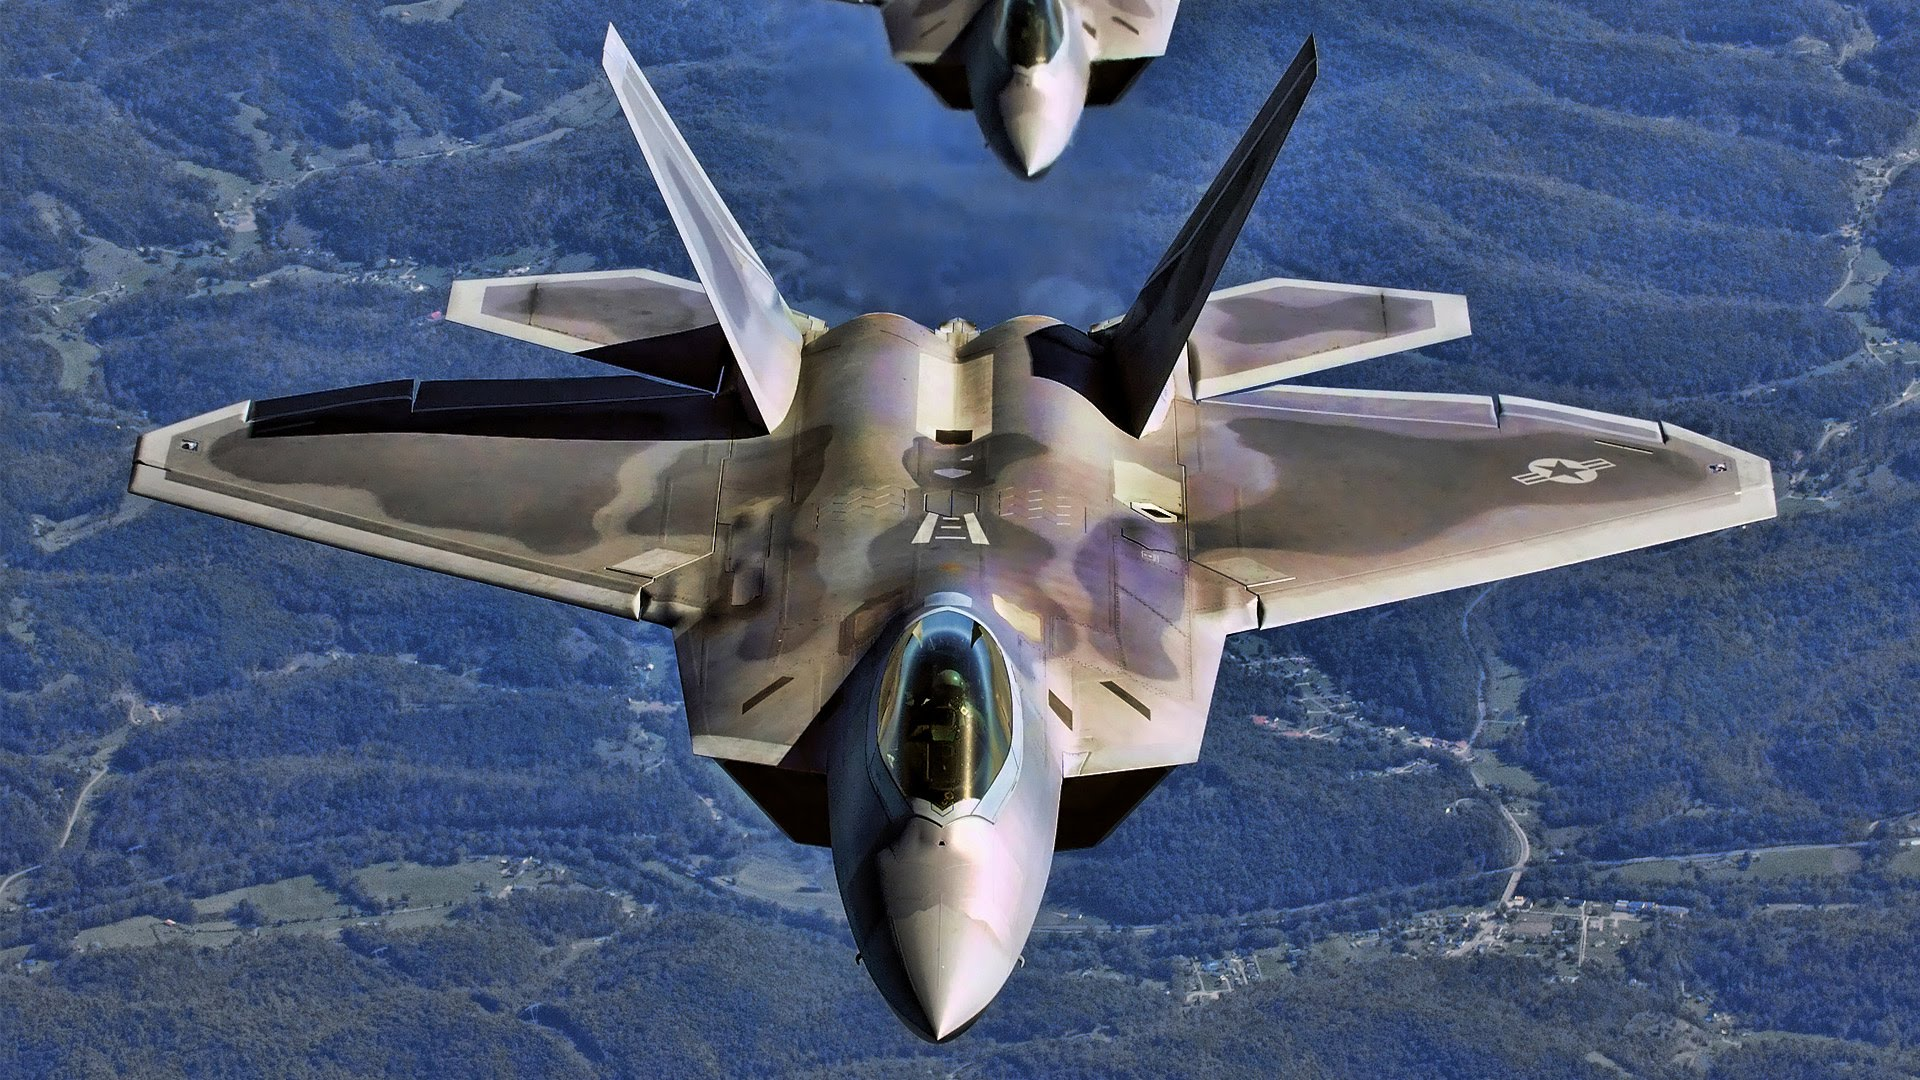 F-22-fighter-Aircraft-USA-Images-Wallpapers-pics